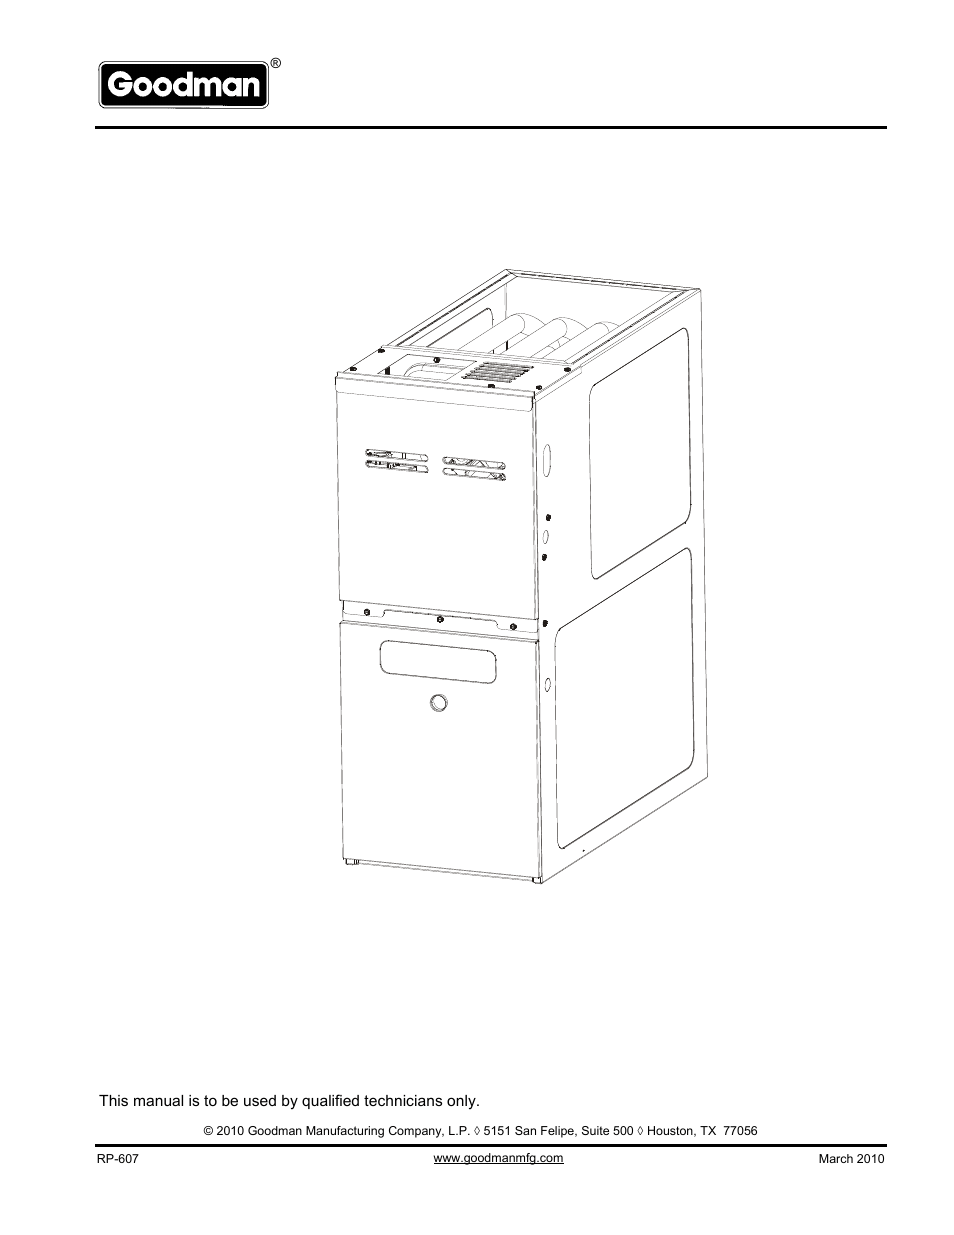 Goodman Furnace Model Gms80904 Ignition Wiring Diagram